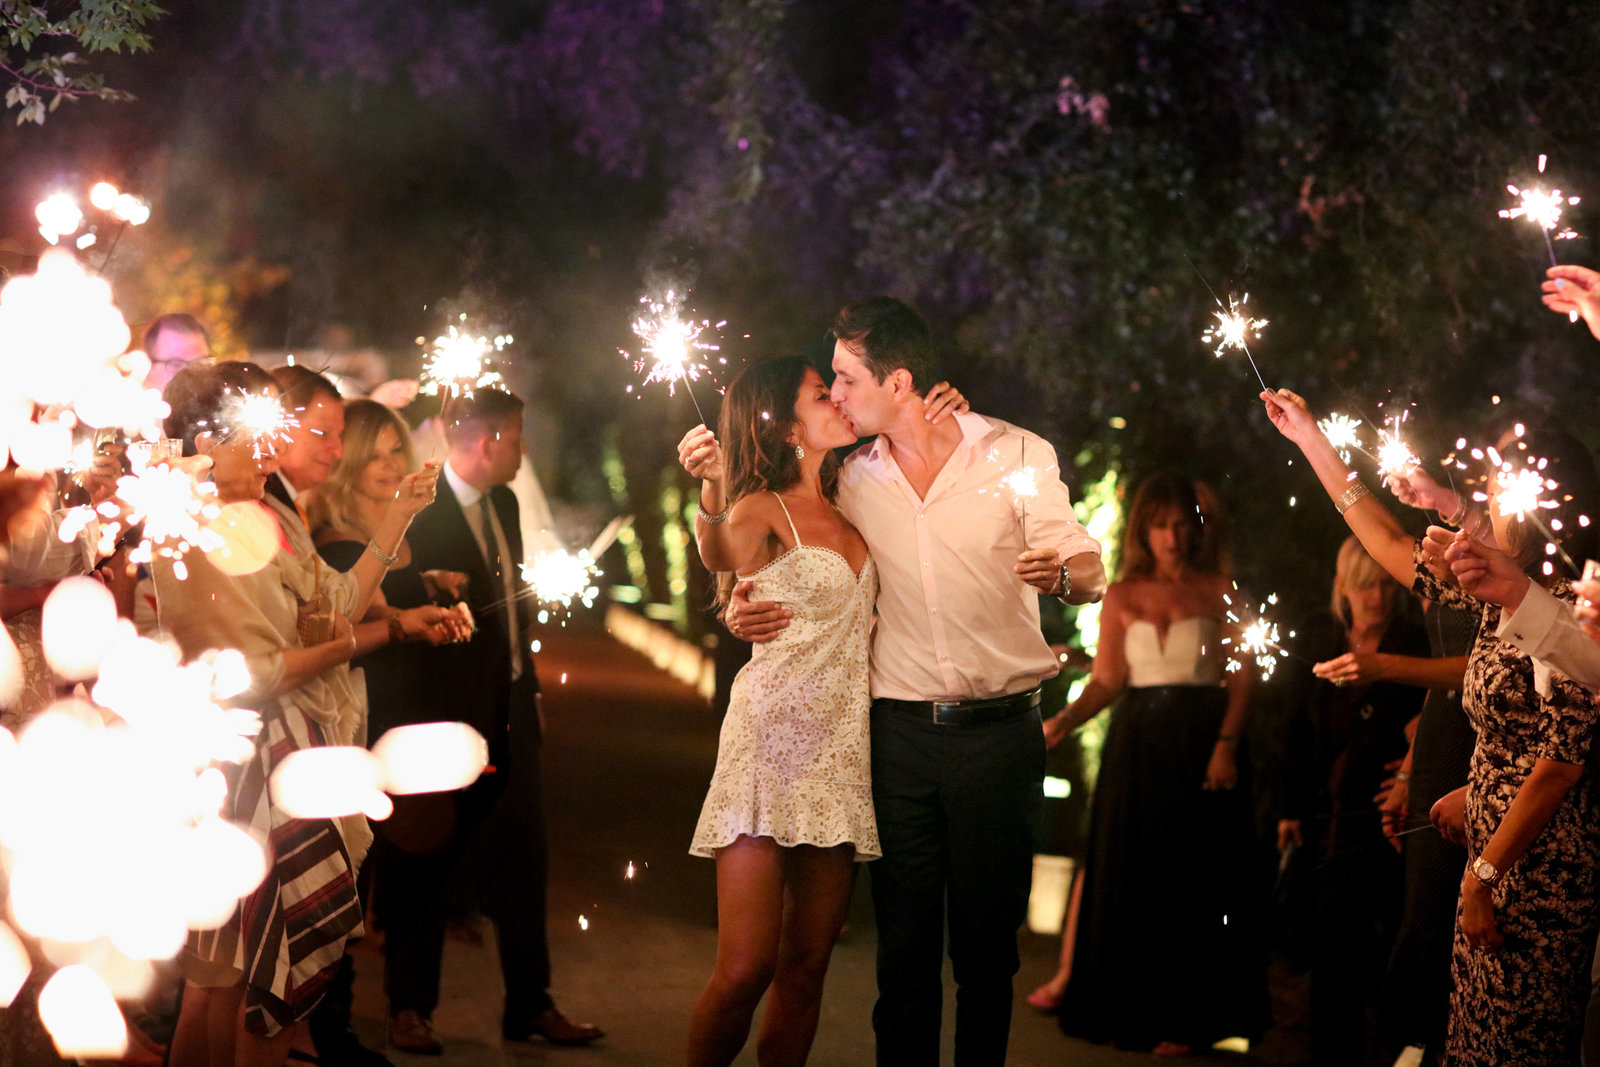 Sparklers surround bride and groom in beautiful atherton wedding